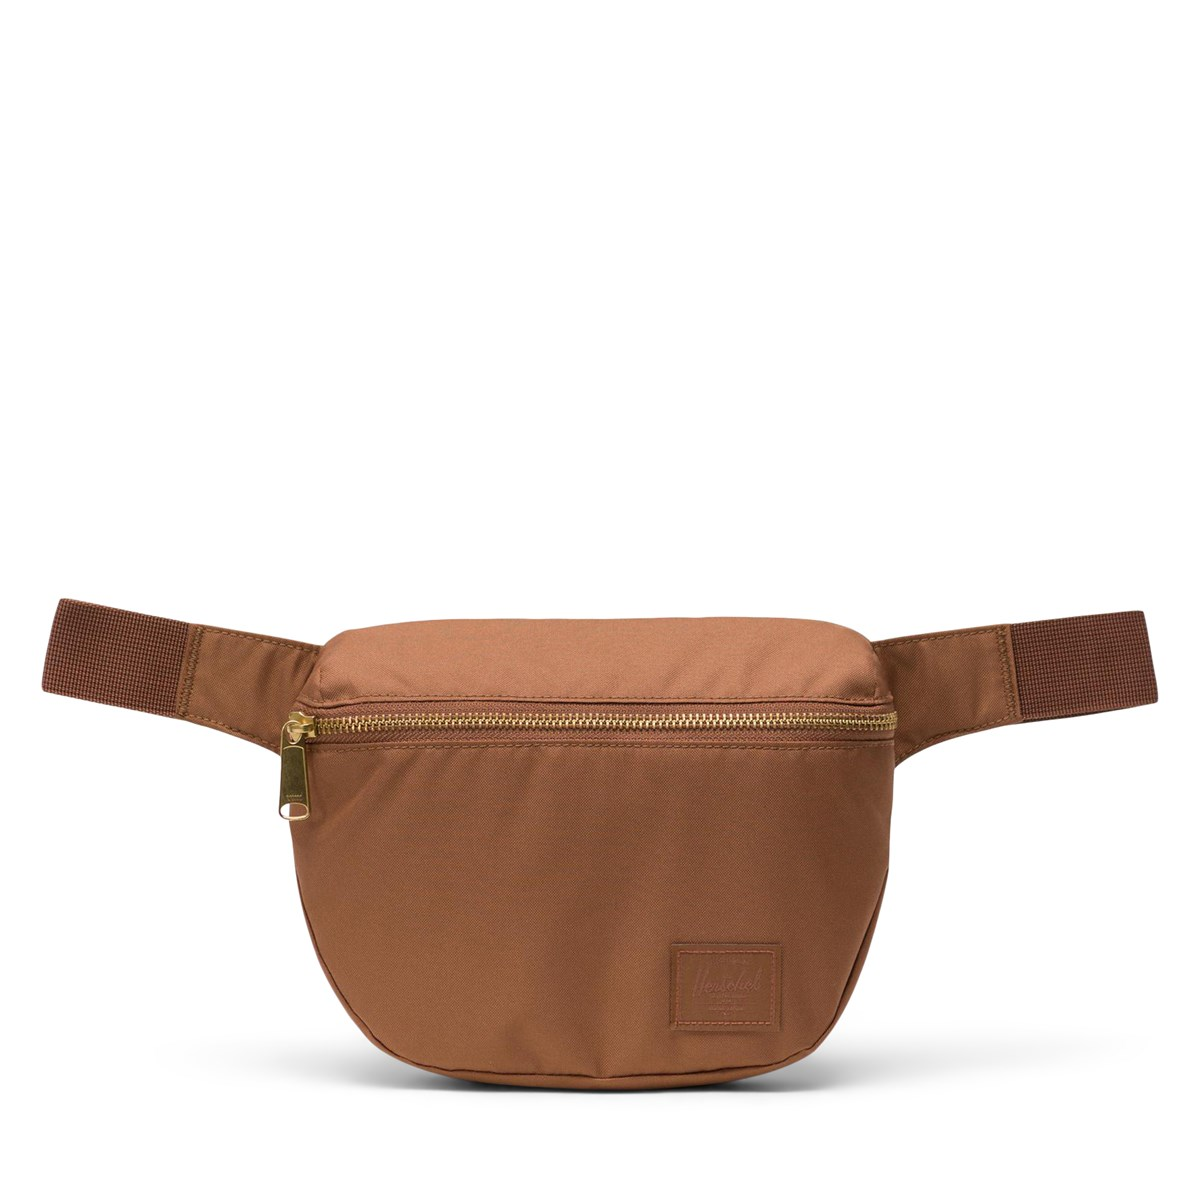 Fifteen Hip Bag in Brown